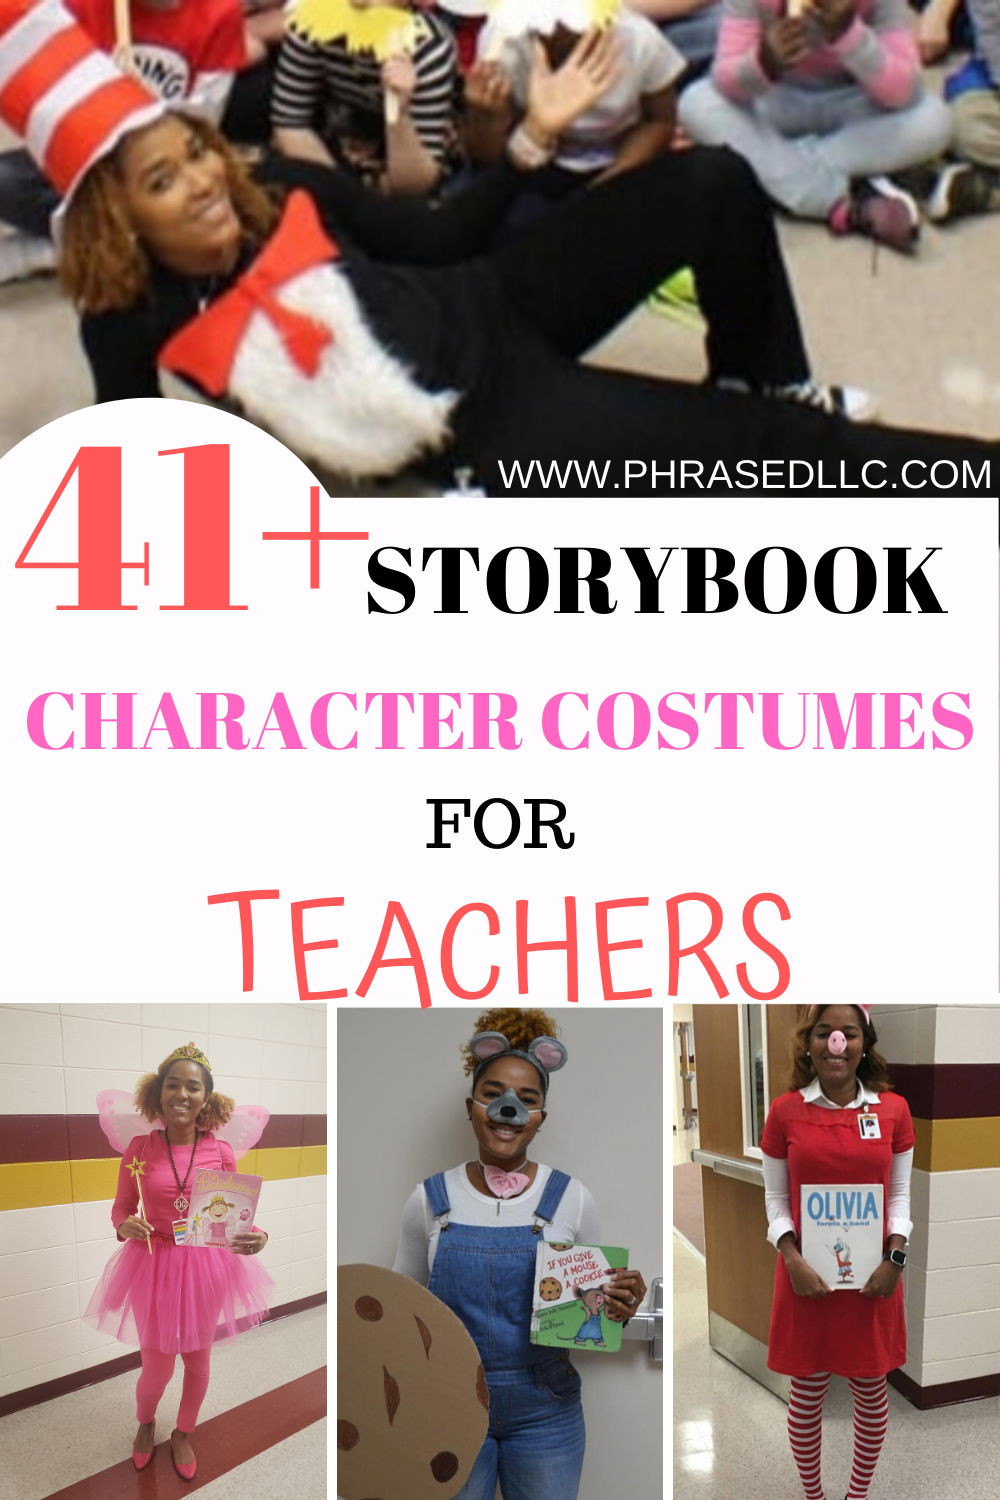 41 Storybook Character Costumes For Teachers Teacher Book Character Costumes Book Character Costumes Storybook Character Costumes